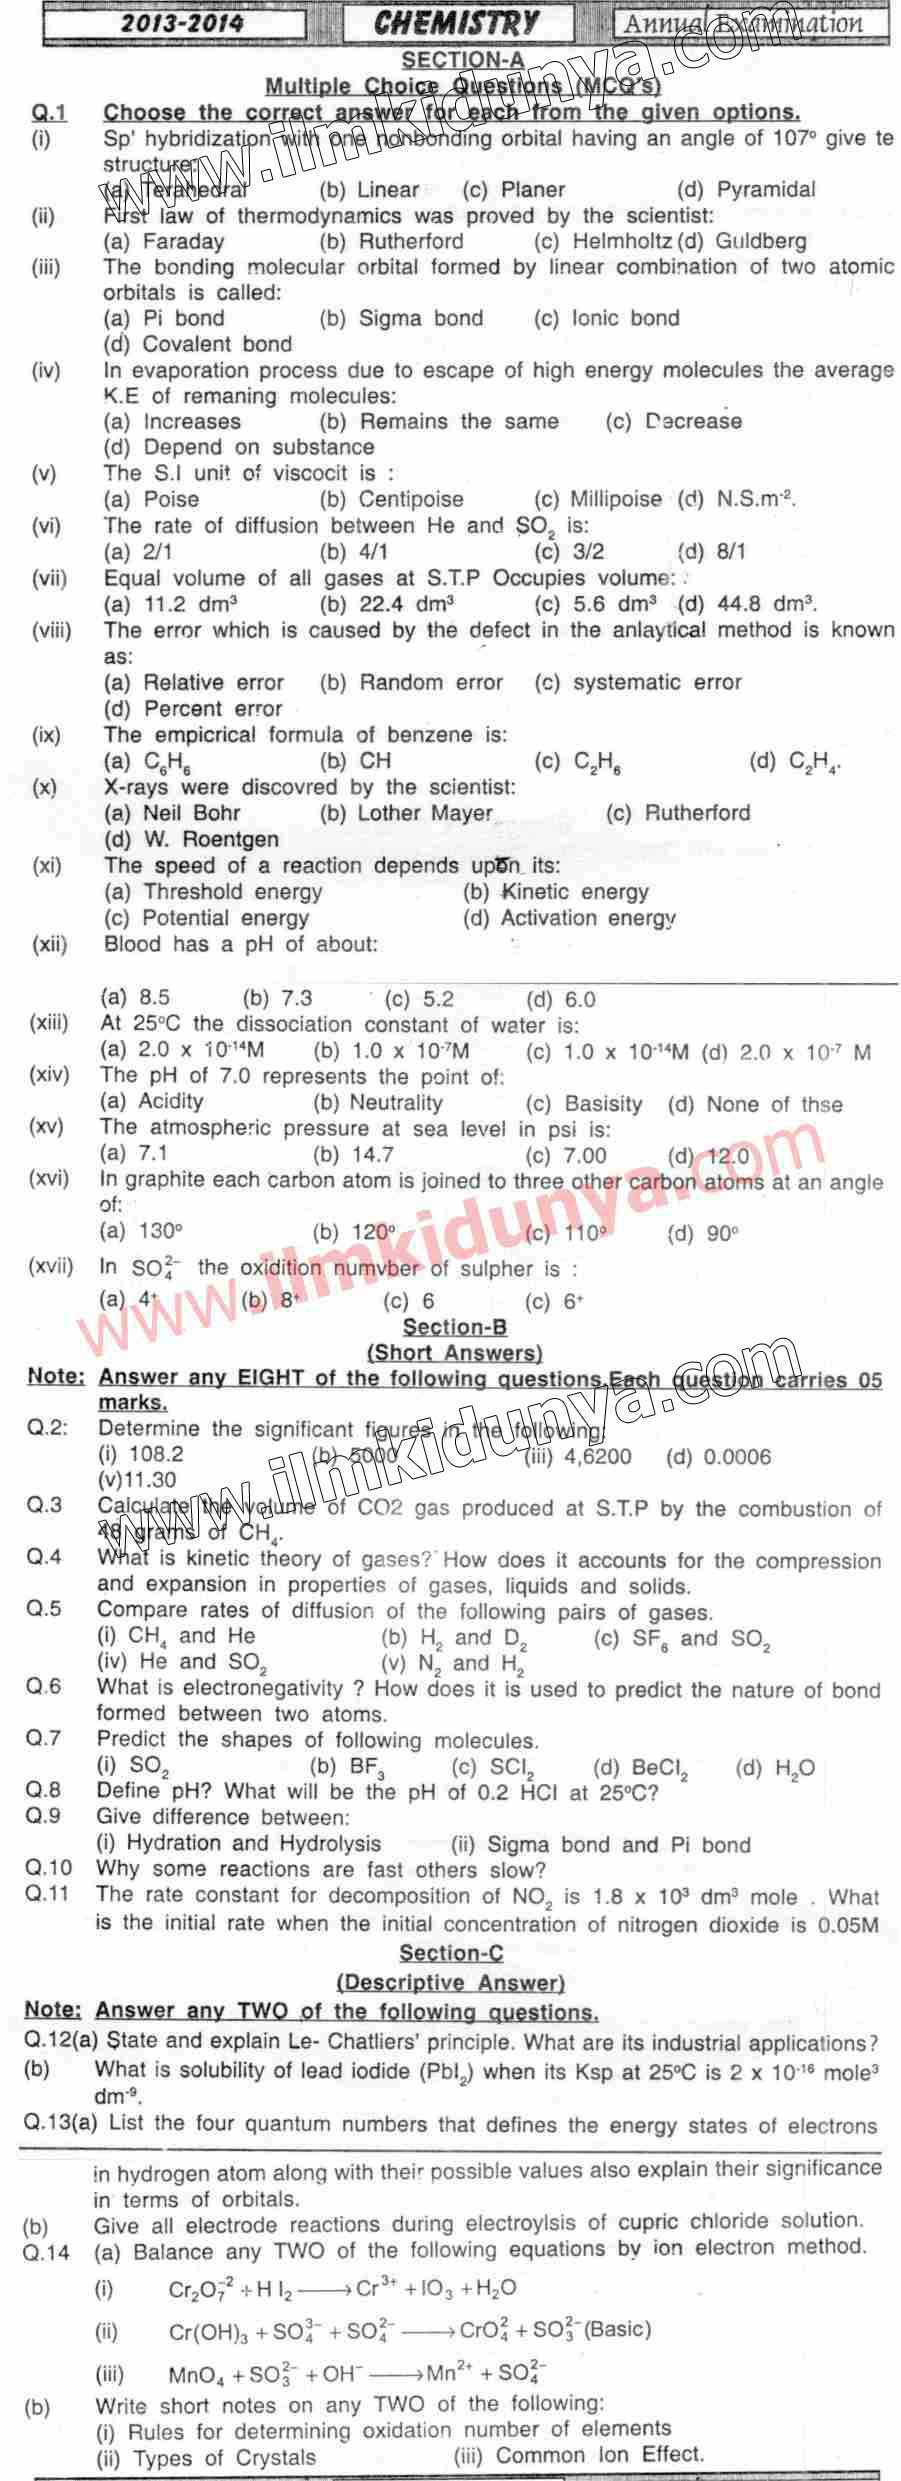 Past Papers 2014 Hyderabad Board Inter Part 1 Chemistry